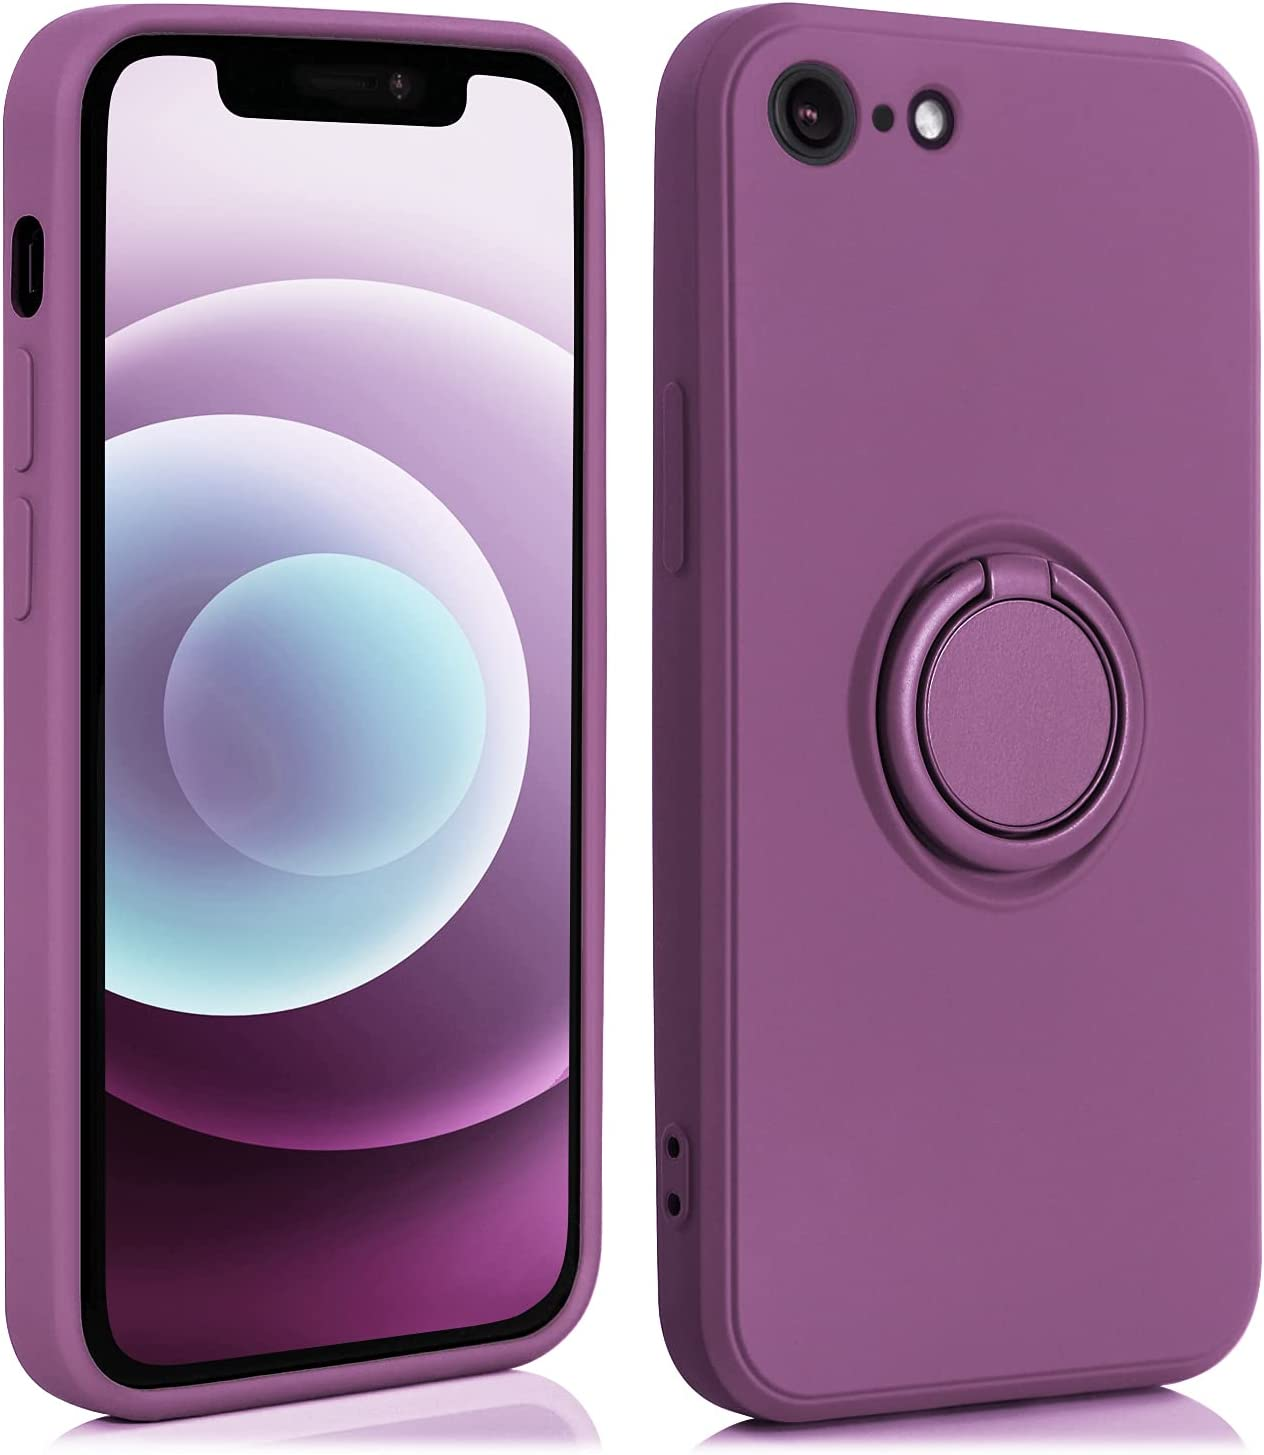 AslabCrew iPhone SE 2020 Case with 360°Ring Holder Kickstand, Shockproof Bumper Soft TPU Protective Smartphone Cover, Purple